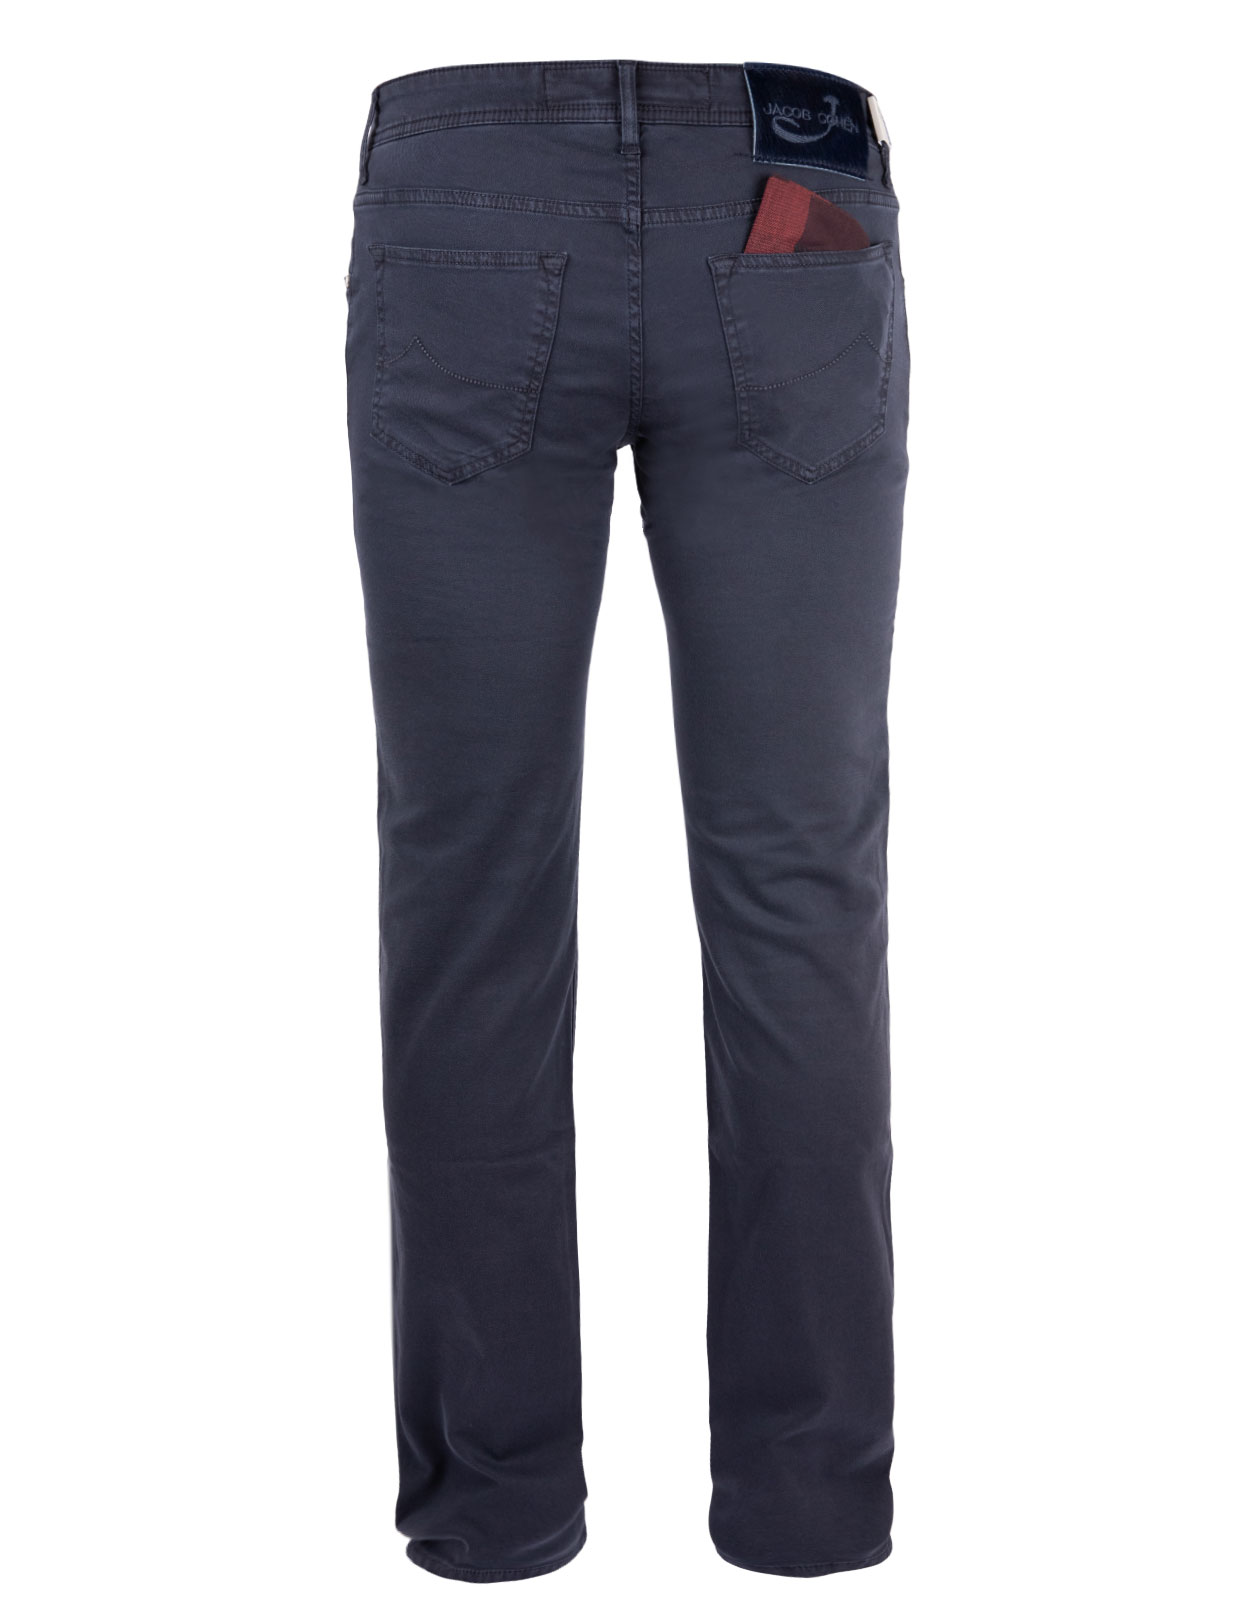 J622 5-Pocket 00566 Cotton Lyocell Stretch Dark Navy